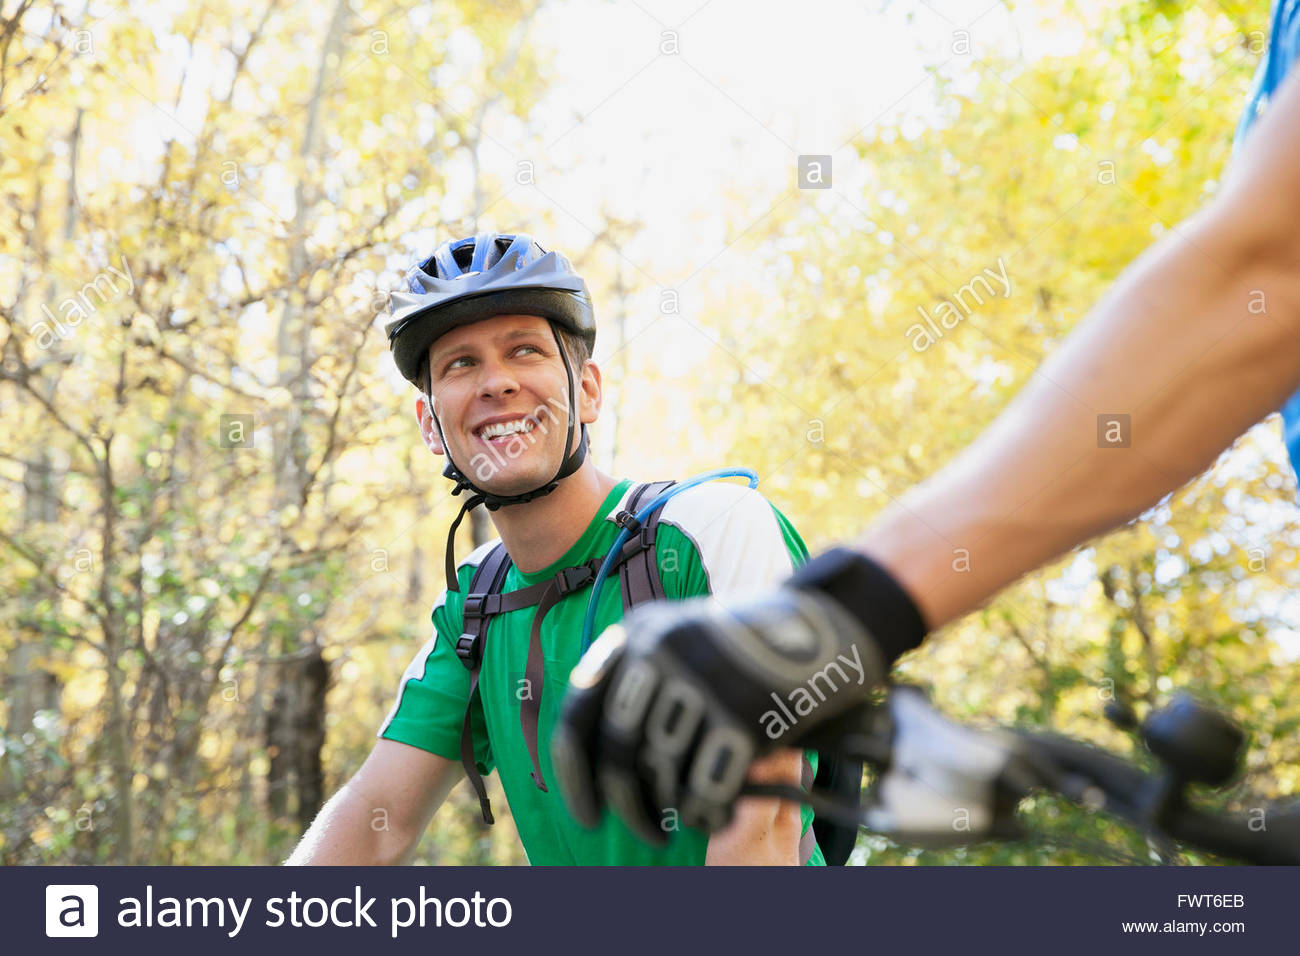 Man turning to look at biking partner. - Stock Image